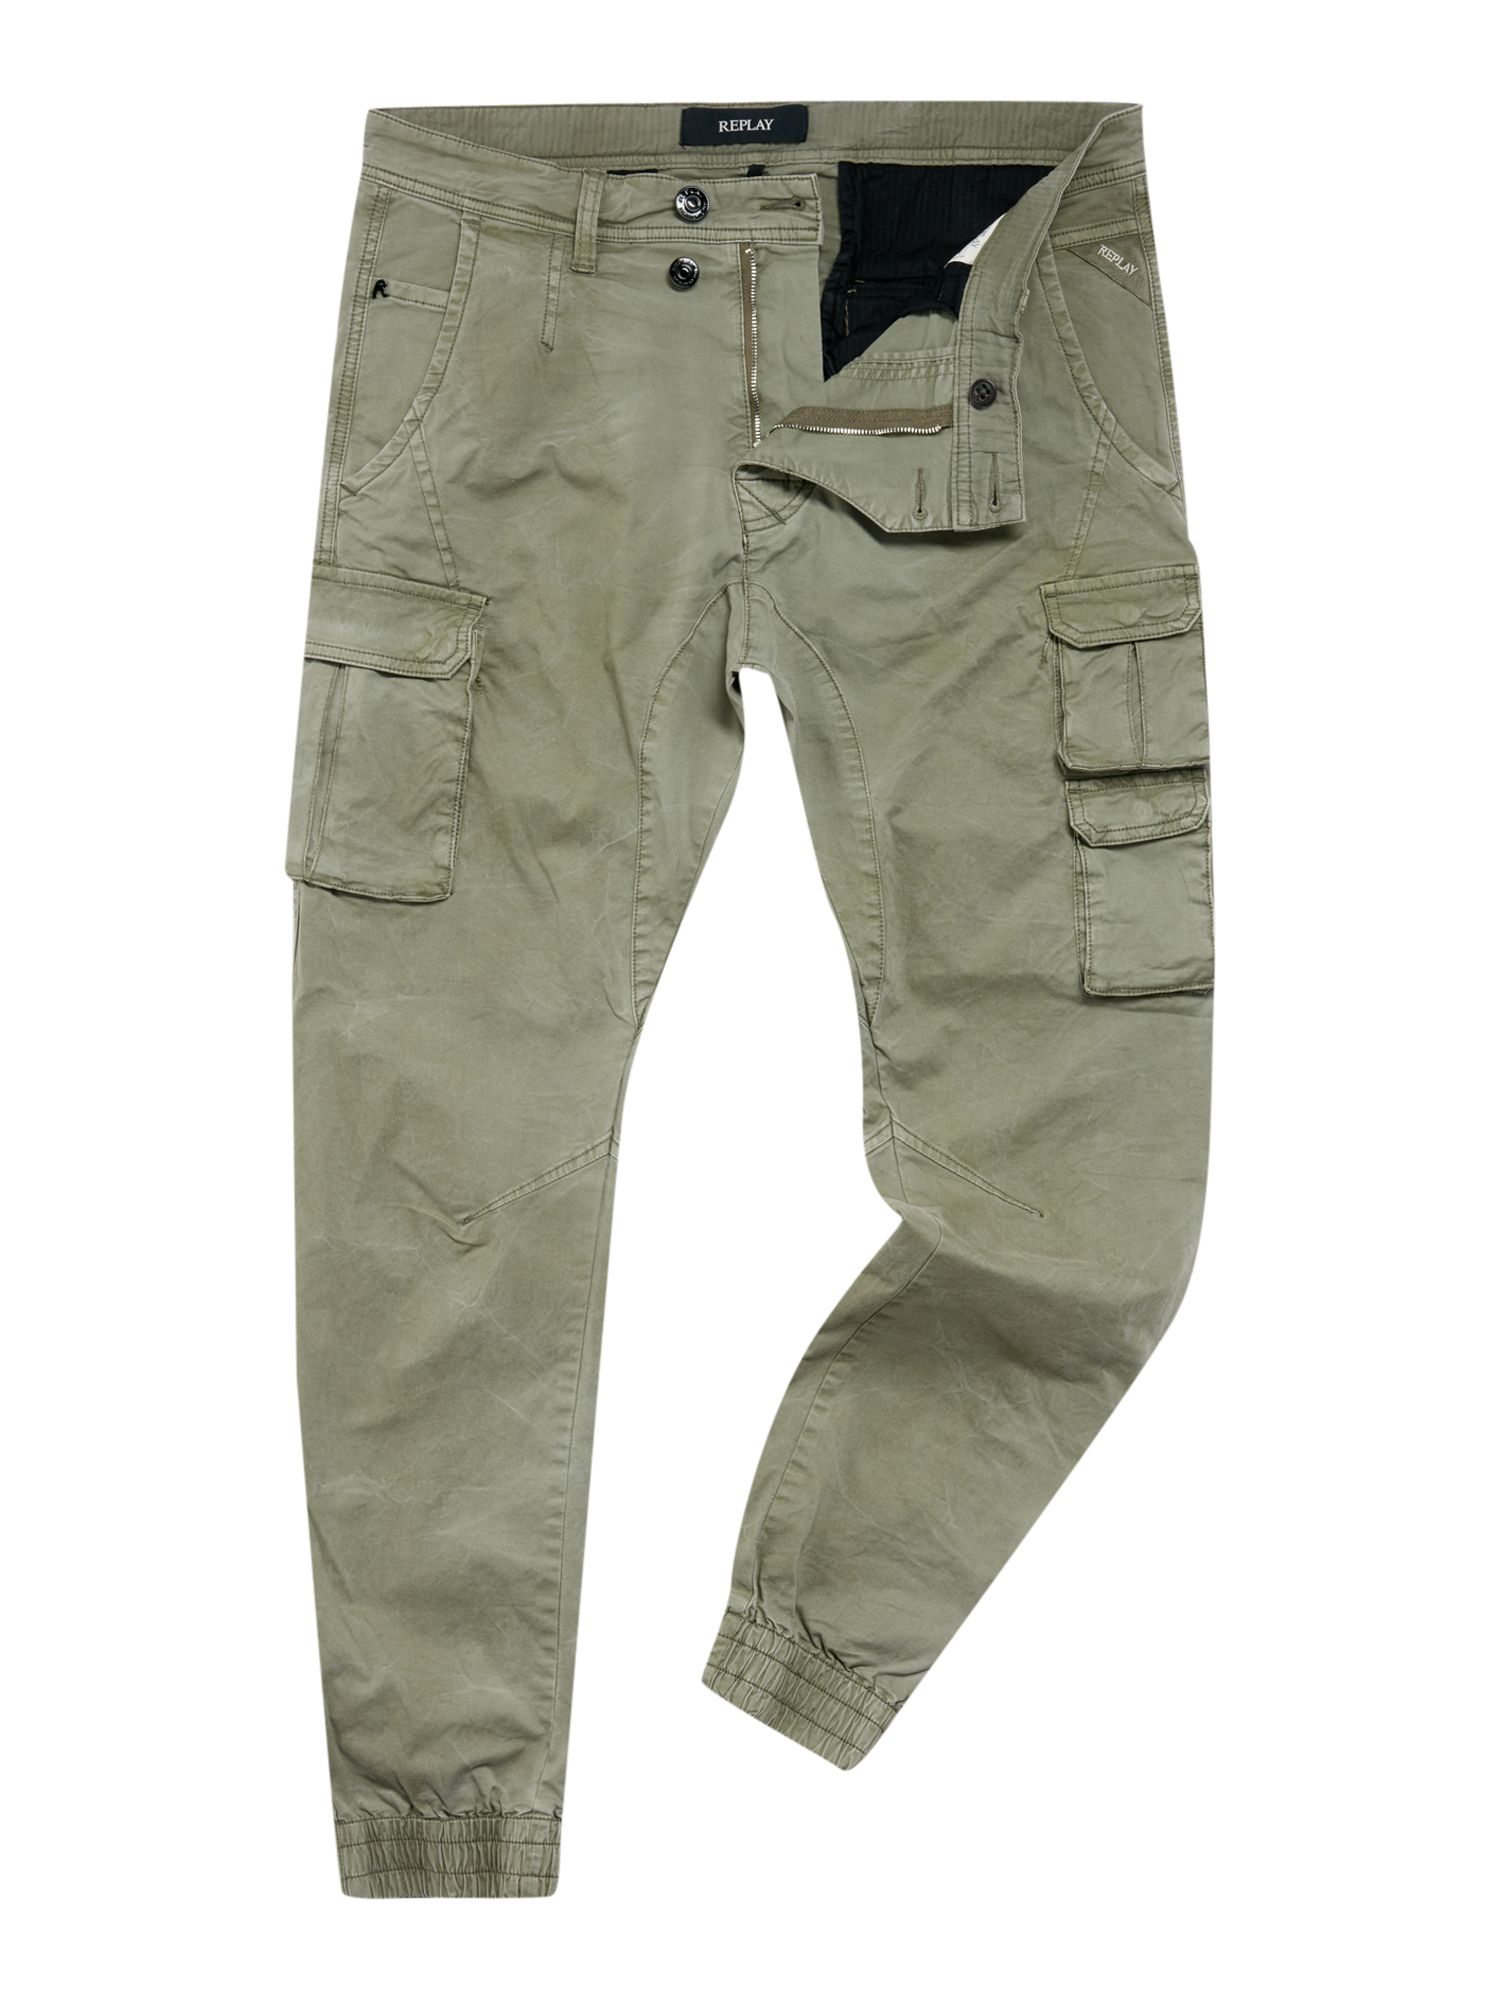 Replay Cotton Cargo Pant In Military Green Green For Men